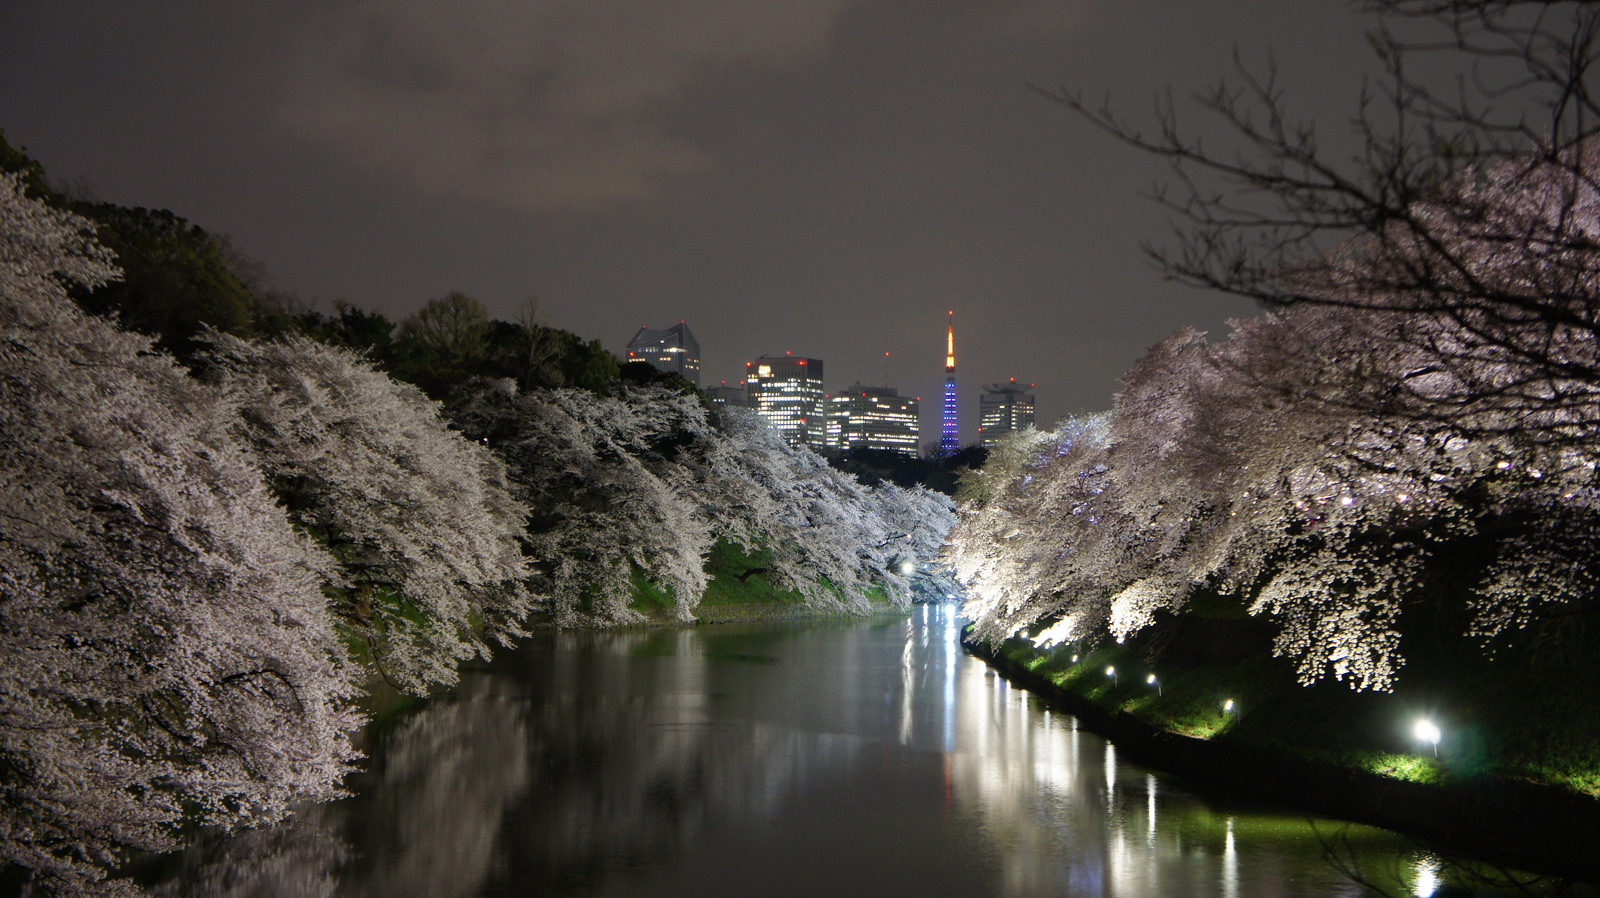 Chidorigafuchi Cherry blossoms and the beautiful night time illumination